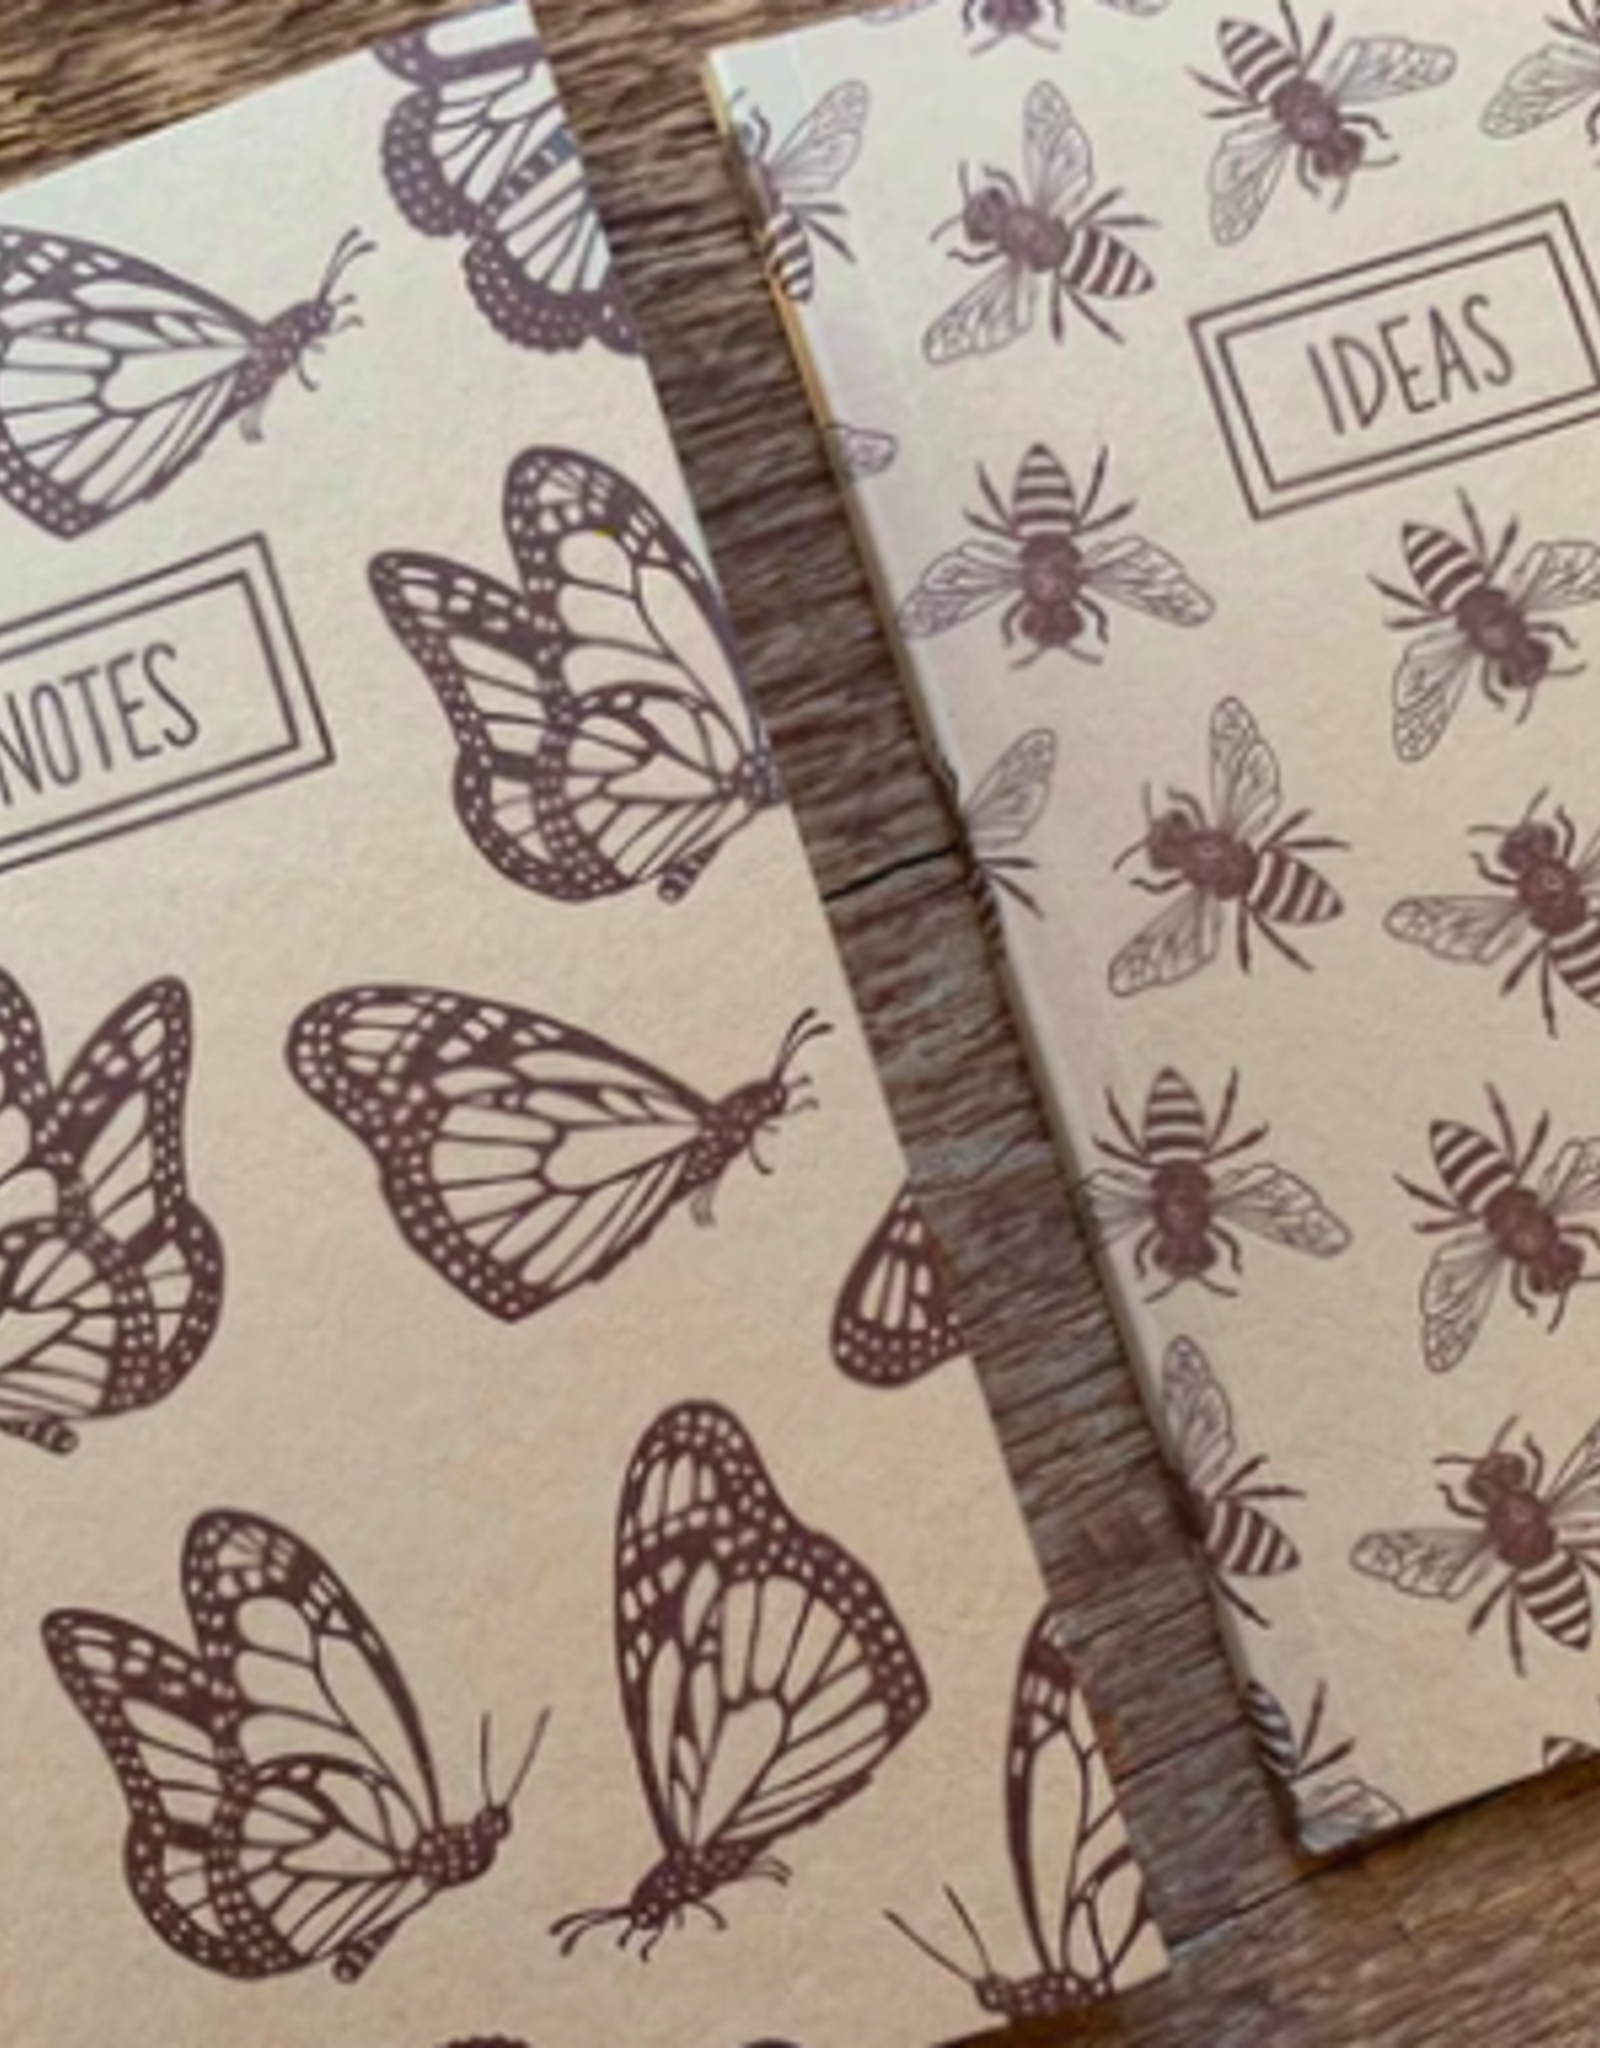 Noteworthy Monarchs & Bees Notebook Set